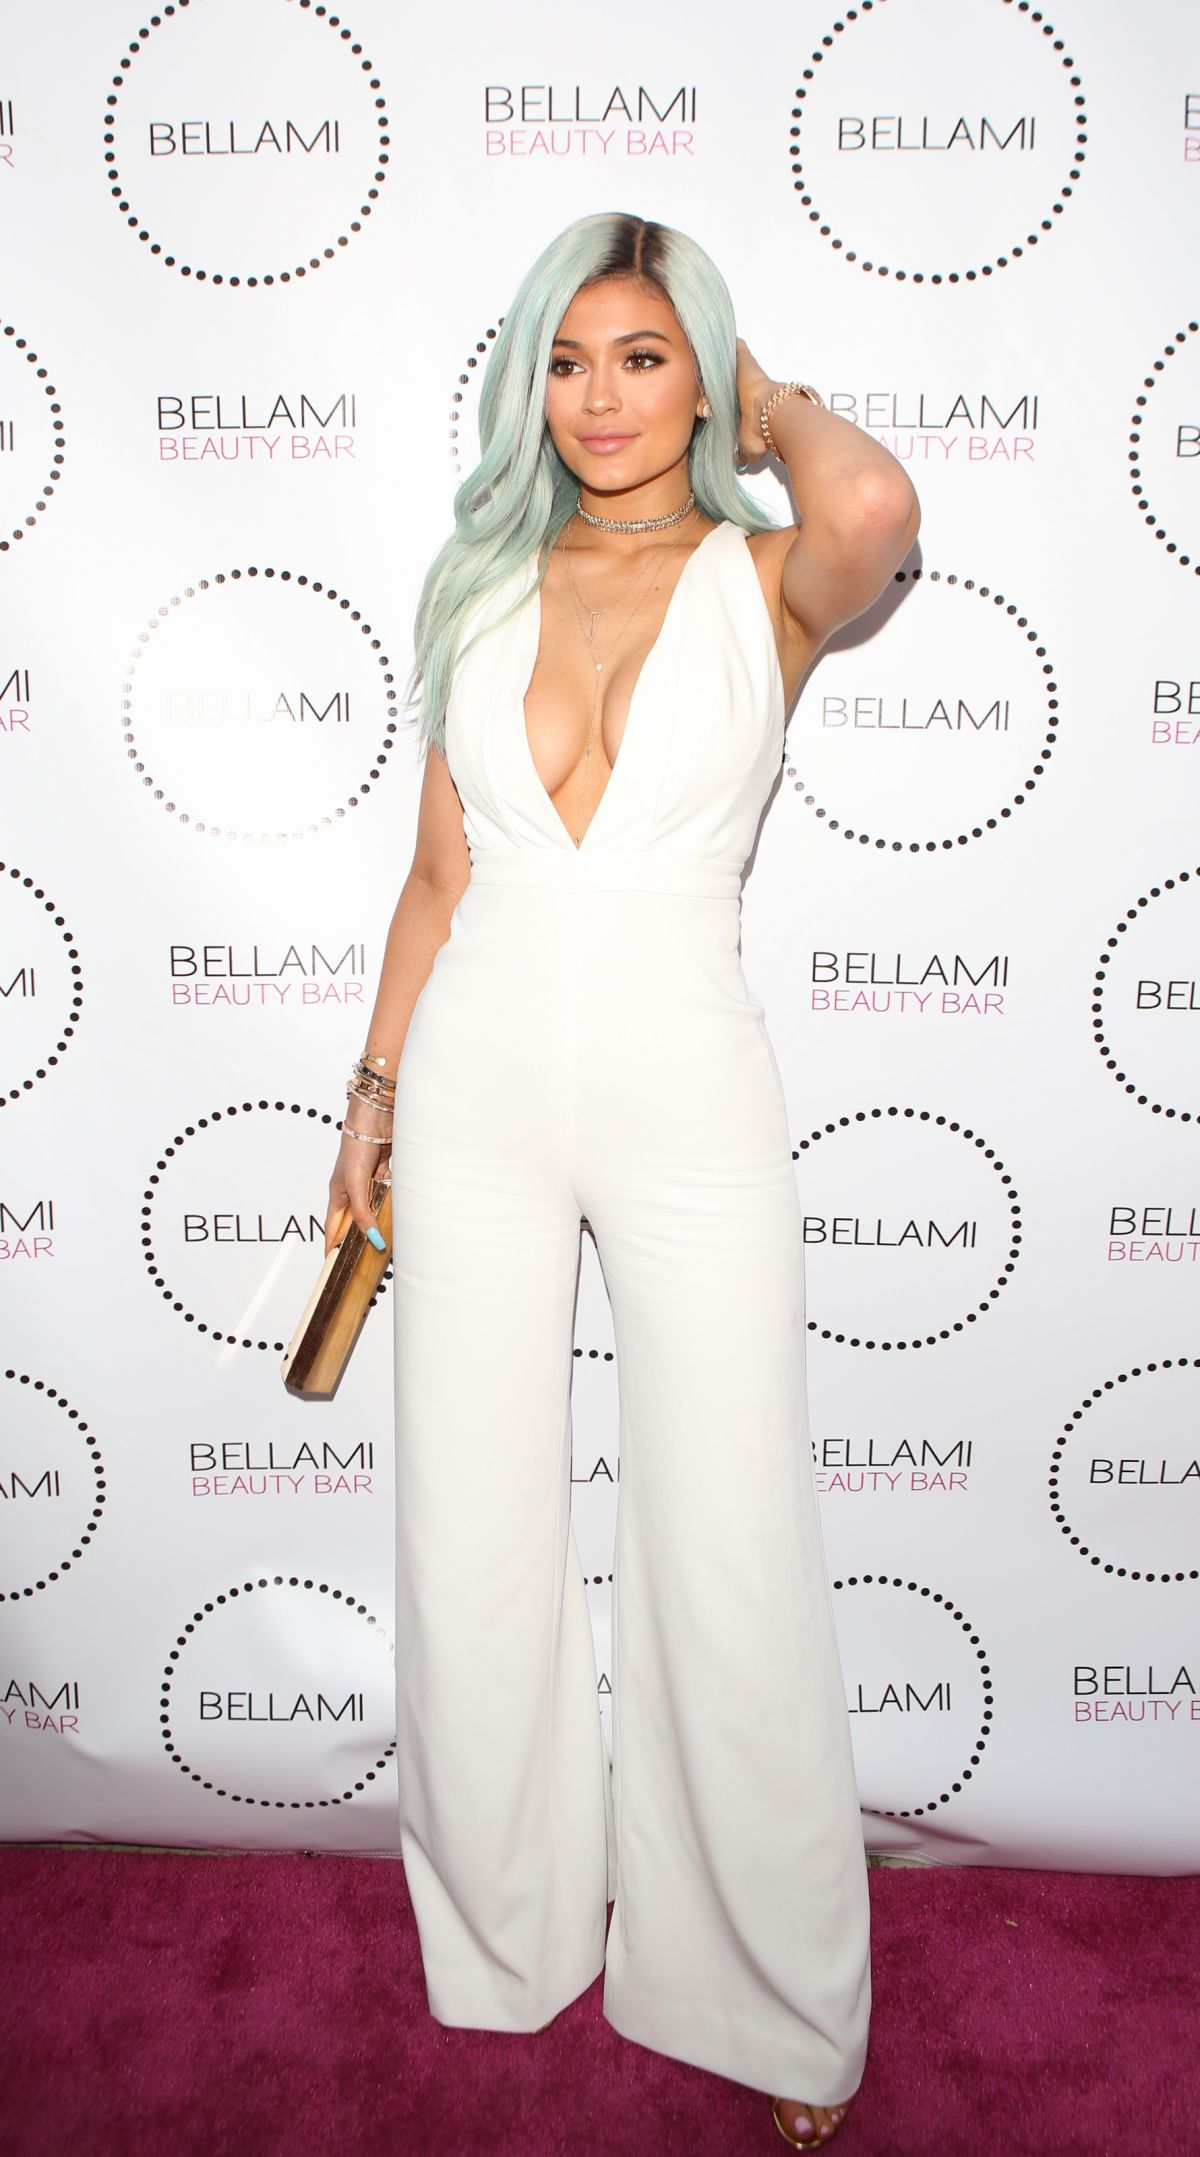 d082d91dd66 kylie-jenner-at-bellami-beauty-bar-in-west-hollywood-07-09-2015 7 ...